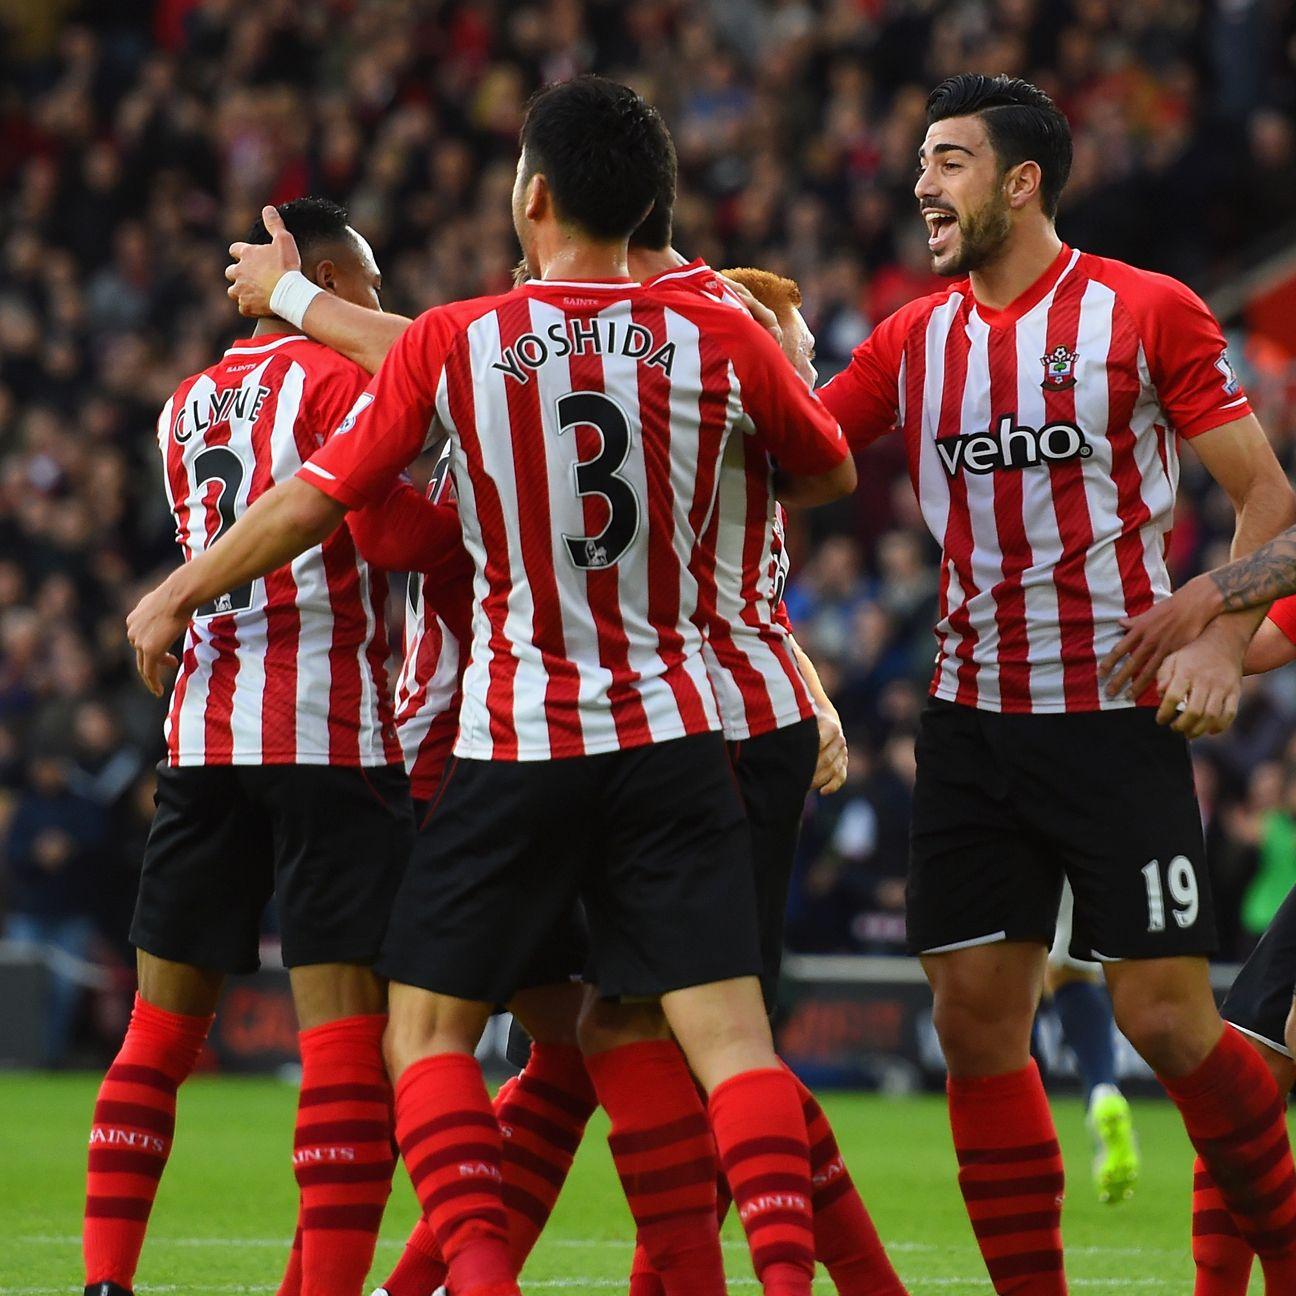 Despite losing its manager and seven first-team players from last season, Southampton sits in fifth place in the Prem table.